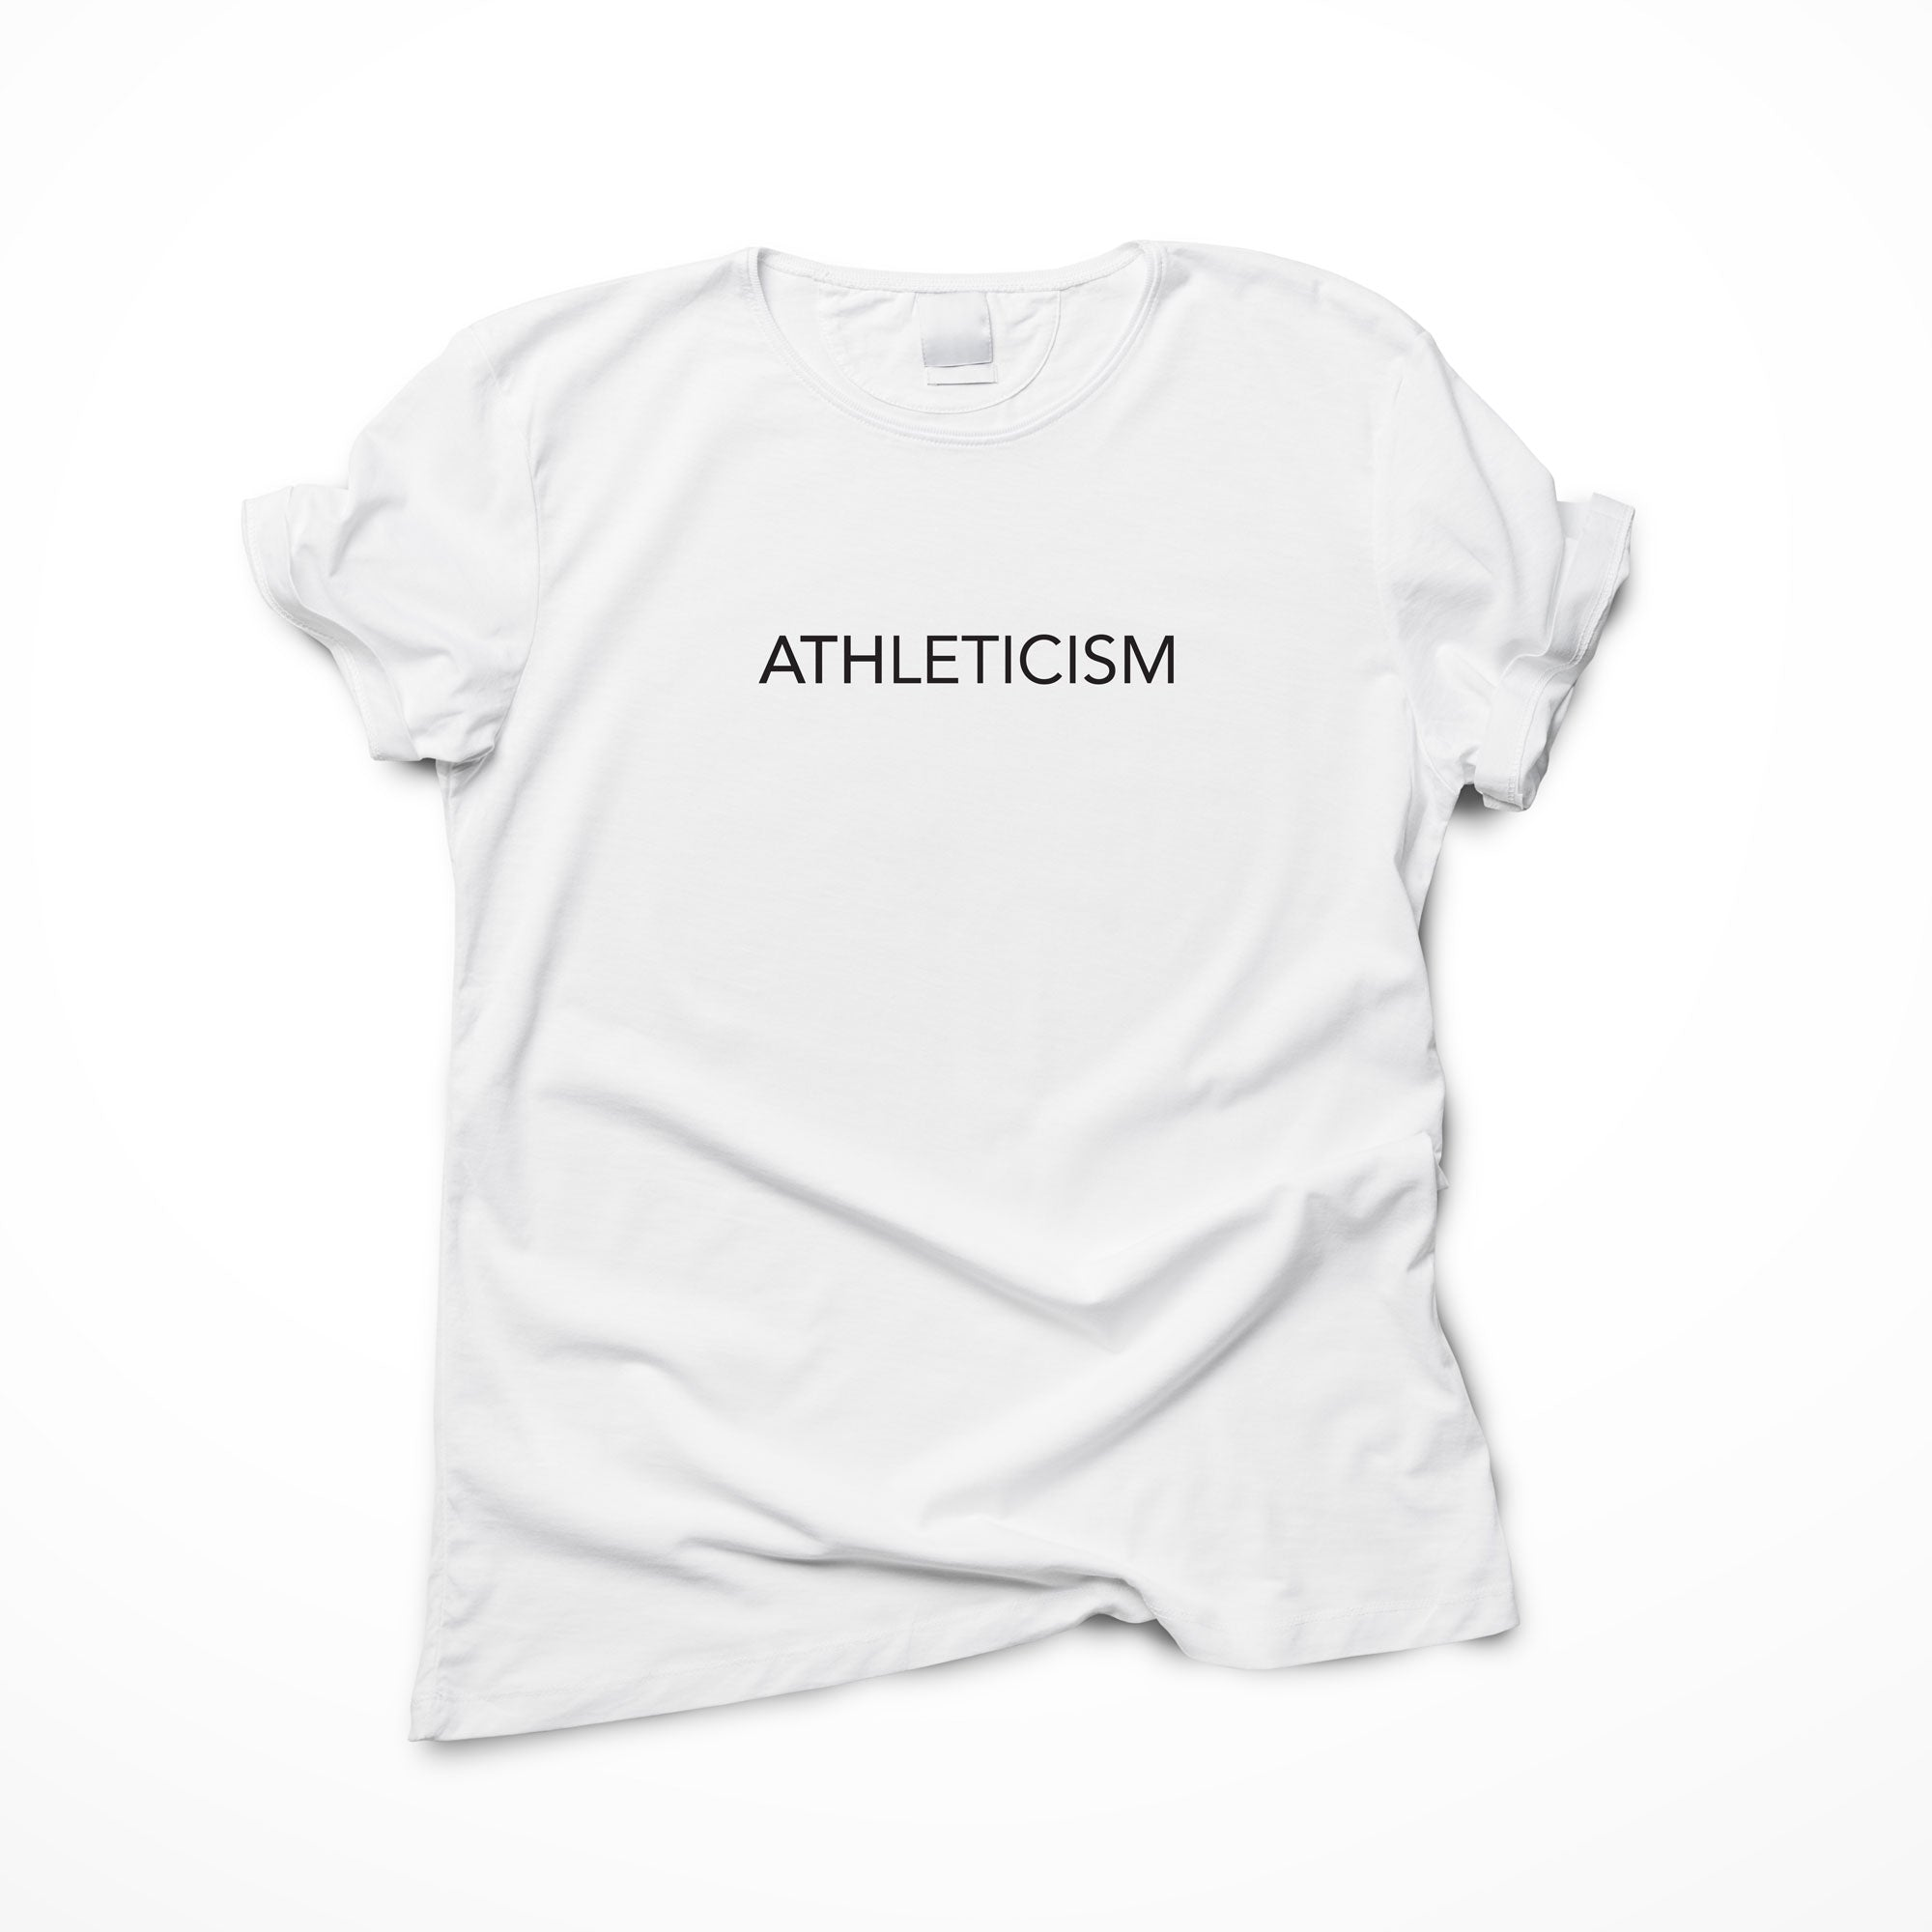 American Apparel cotton t-shirts are a staple item. Our ATHLETICISM logo on it makes it the coolest, most comfortable t-shirt. Logo up and show everyone you are ATHLETICISM Made.